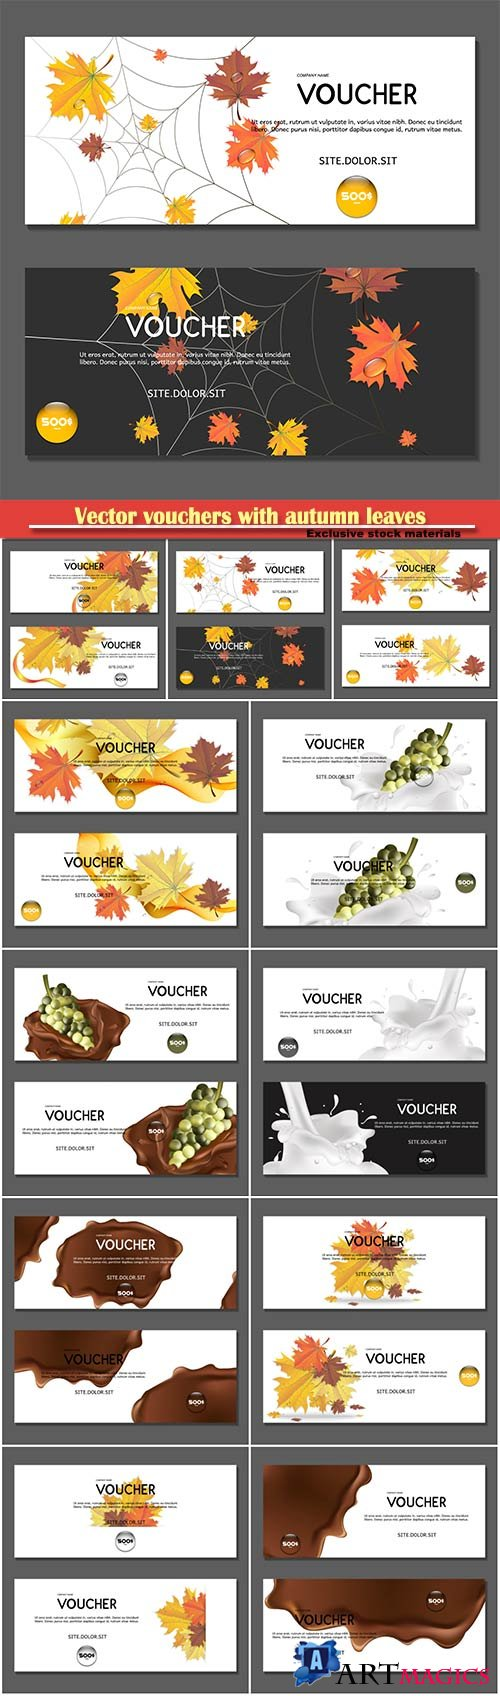 Vector vouchers with autumn leaves and grapes